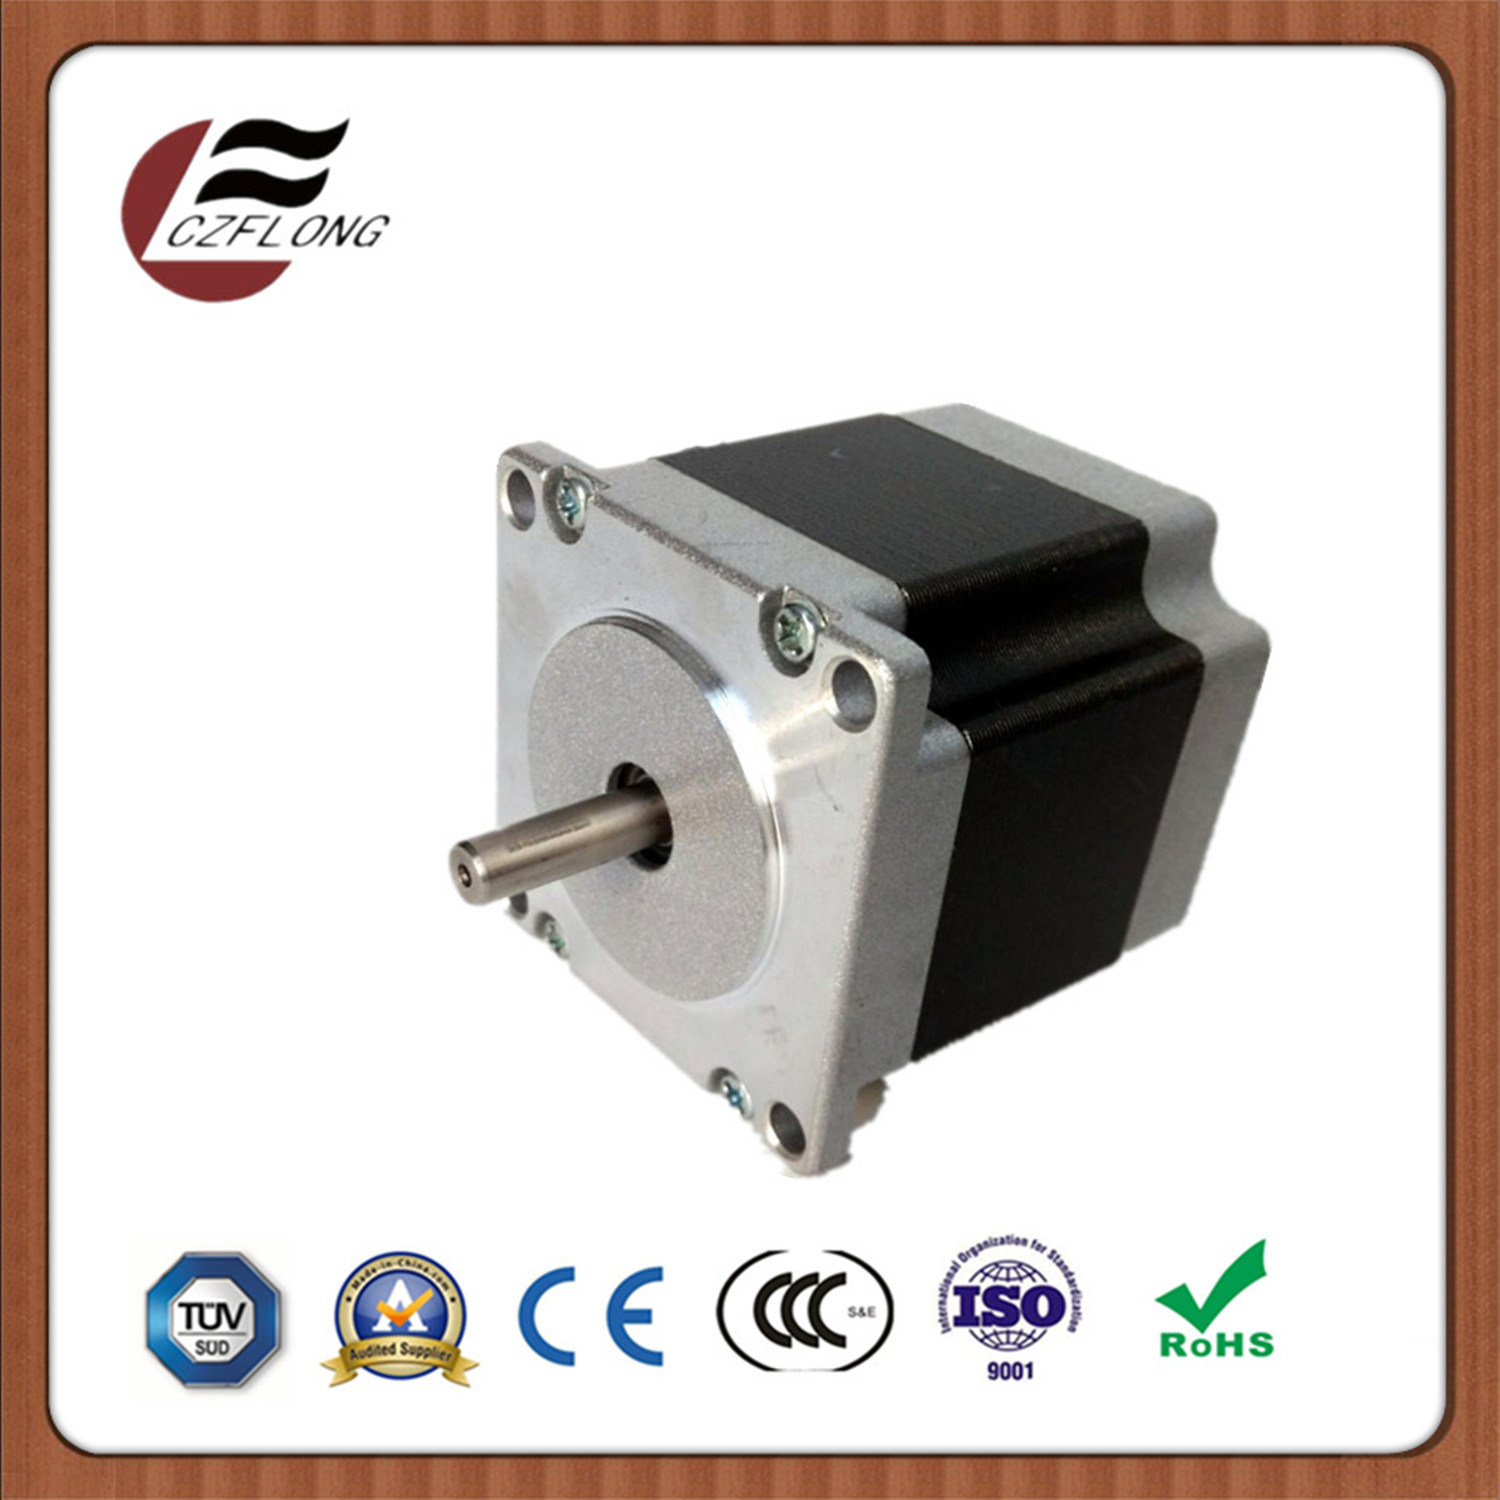 1.8 Deg Stepper Motor for CNC Machines Wide Application